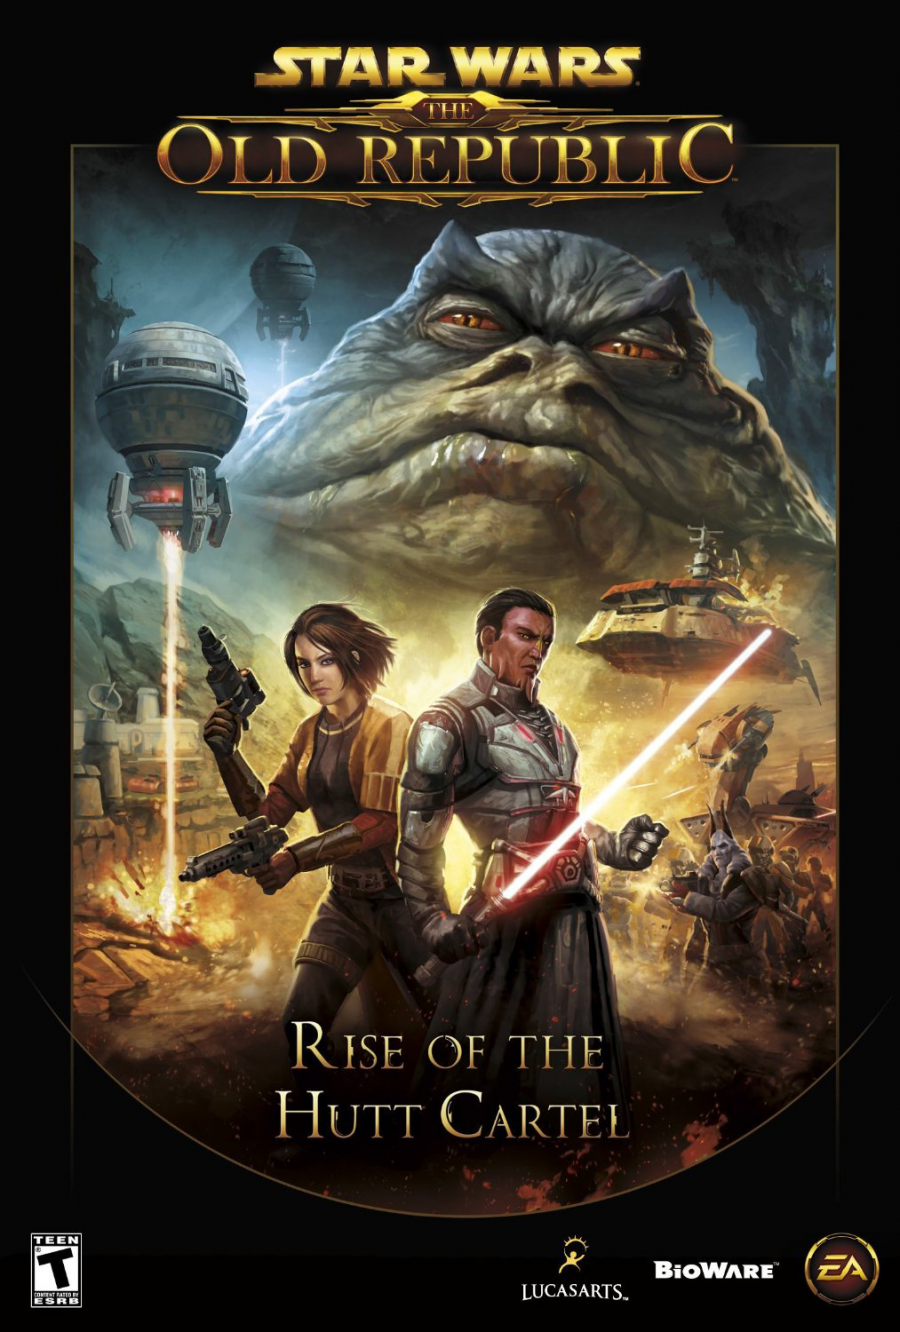 Star Wars: The Old Republic - The Rise of the Hutt Cartel